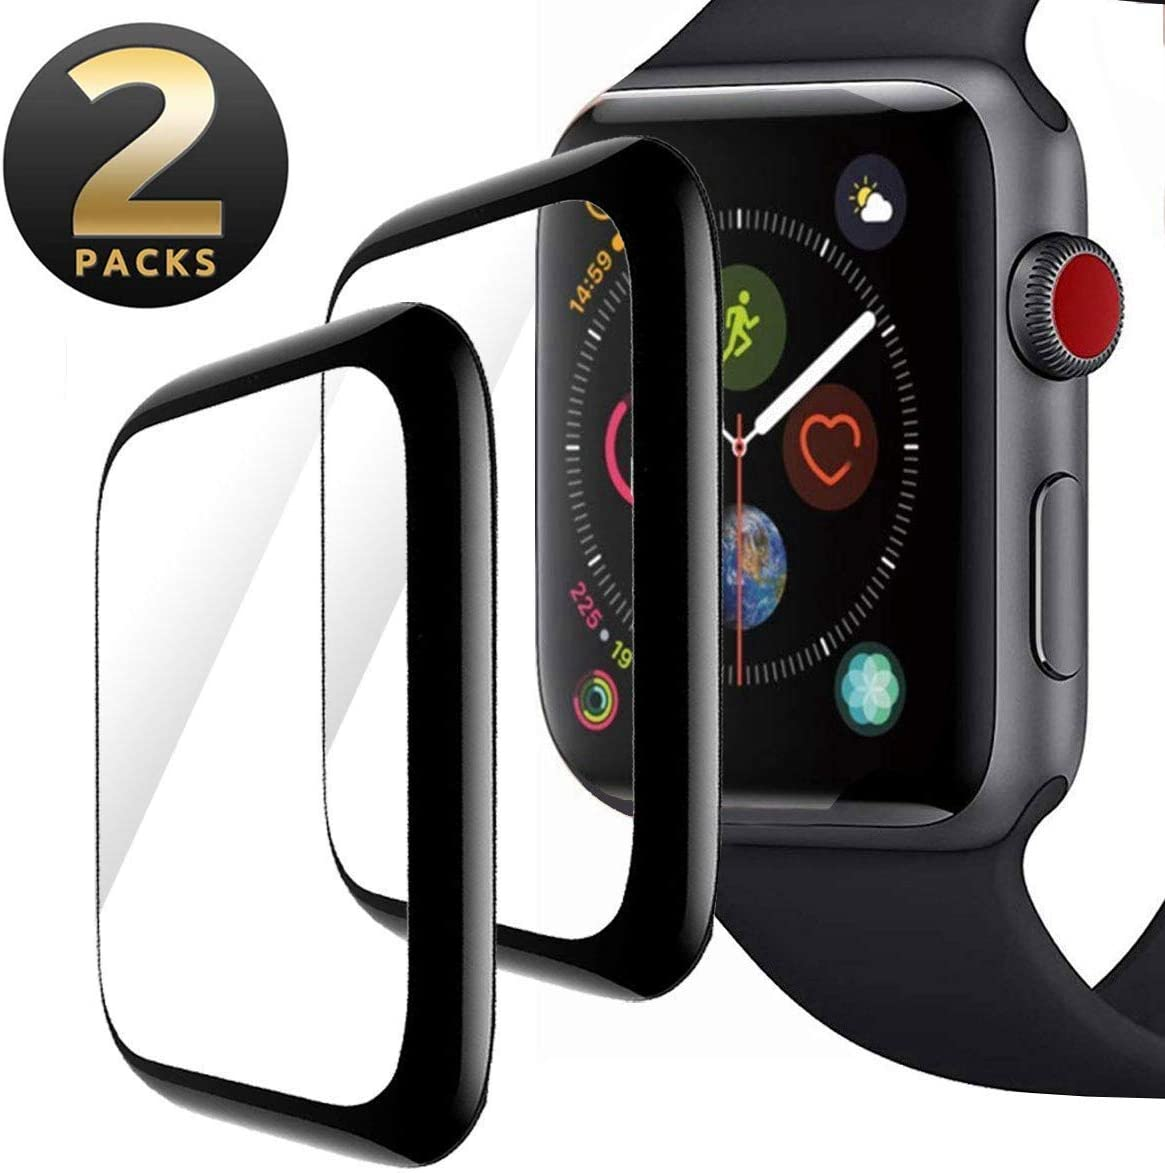 Screen Protector for Apple Watch 44mm, [2 pack] Max Coverage Anti-Scratch Bubble-Free Black Edge 3D Curved Tempered Glass Film Compatible with iWatch 44mm Series 6/5/4/SE